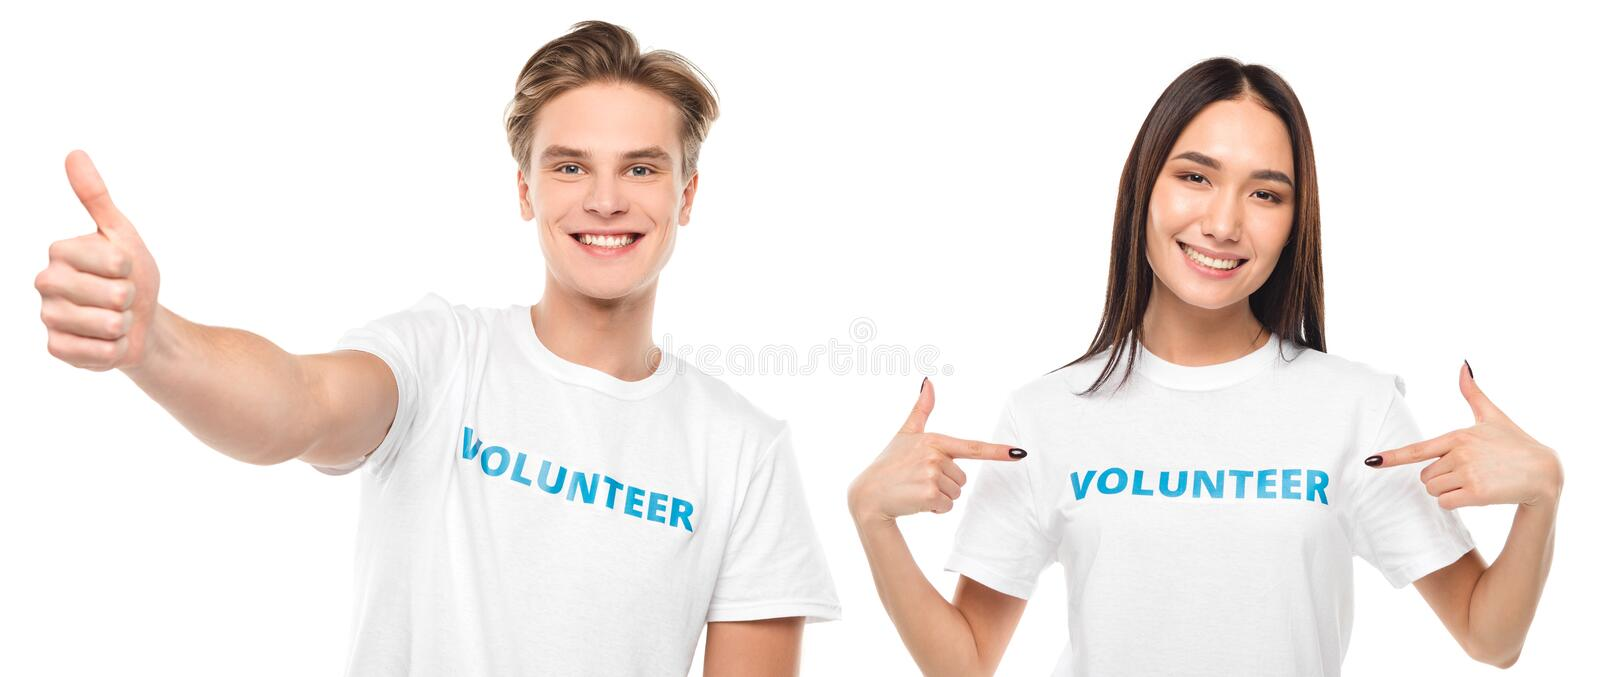 Couple of happy volunteers doing different gestures. Isolated on white royalty free stock photo